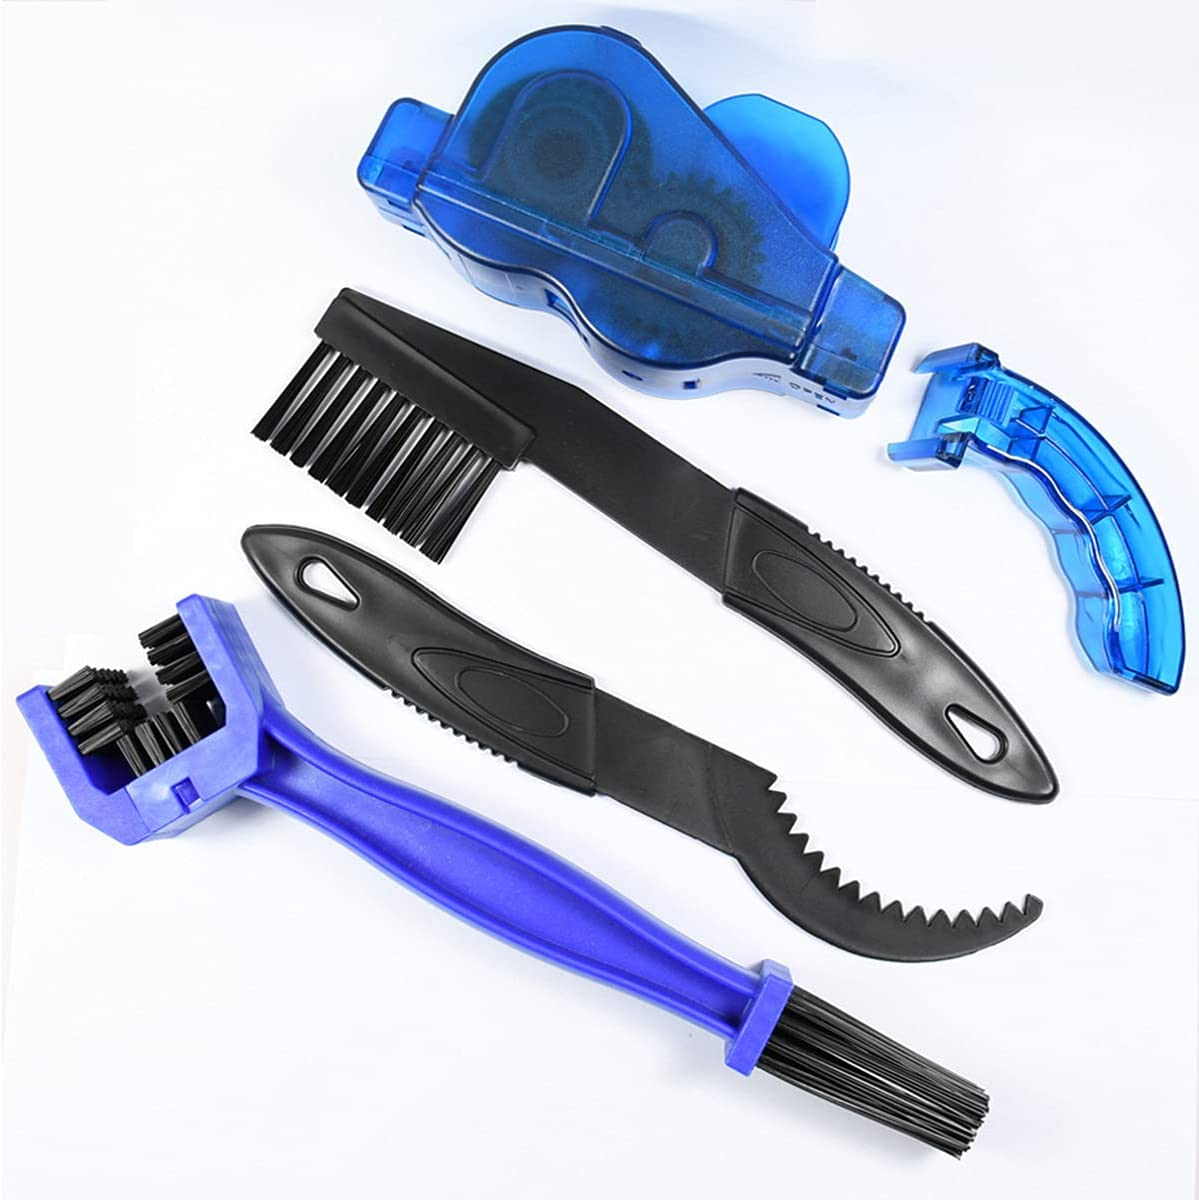 Bicycle Chain Beauty products Washer Mountain Bike B Brush Indefinitely Tool Cleaning